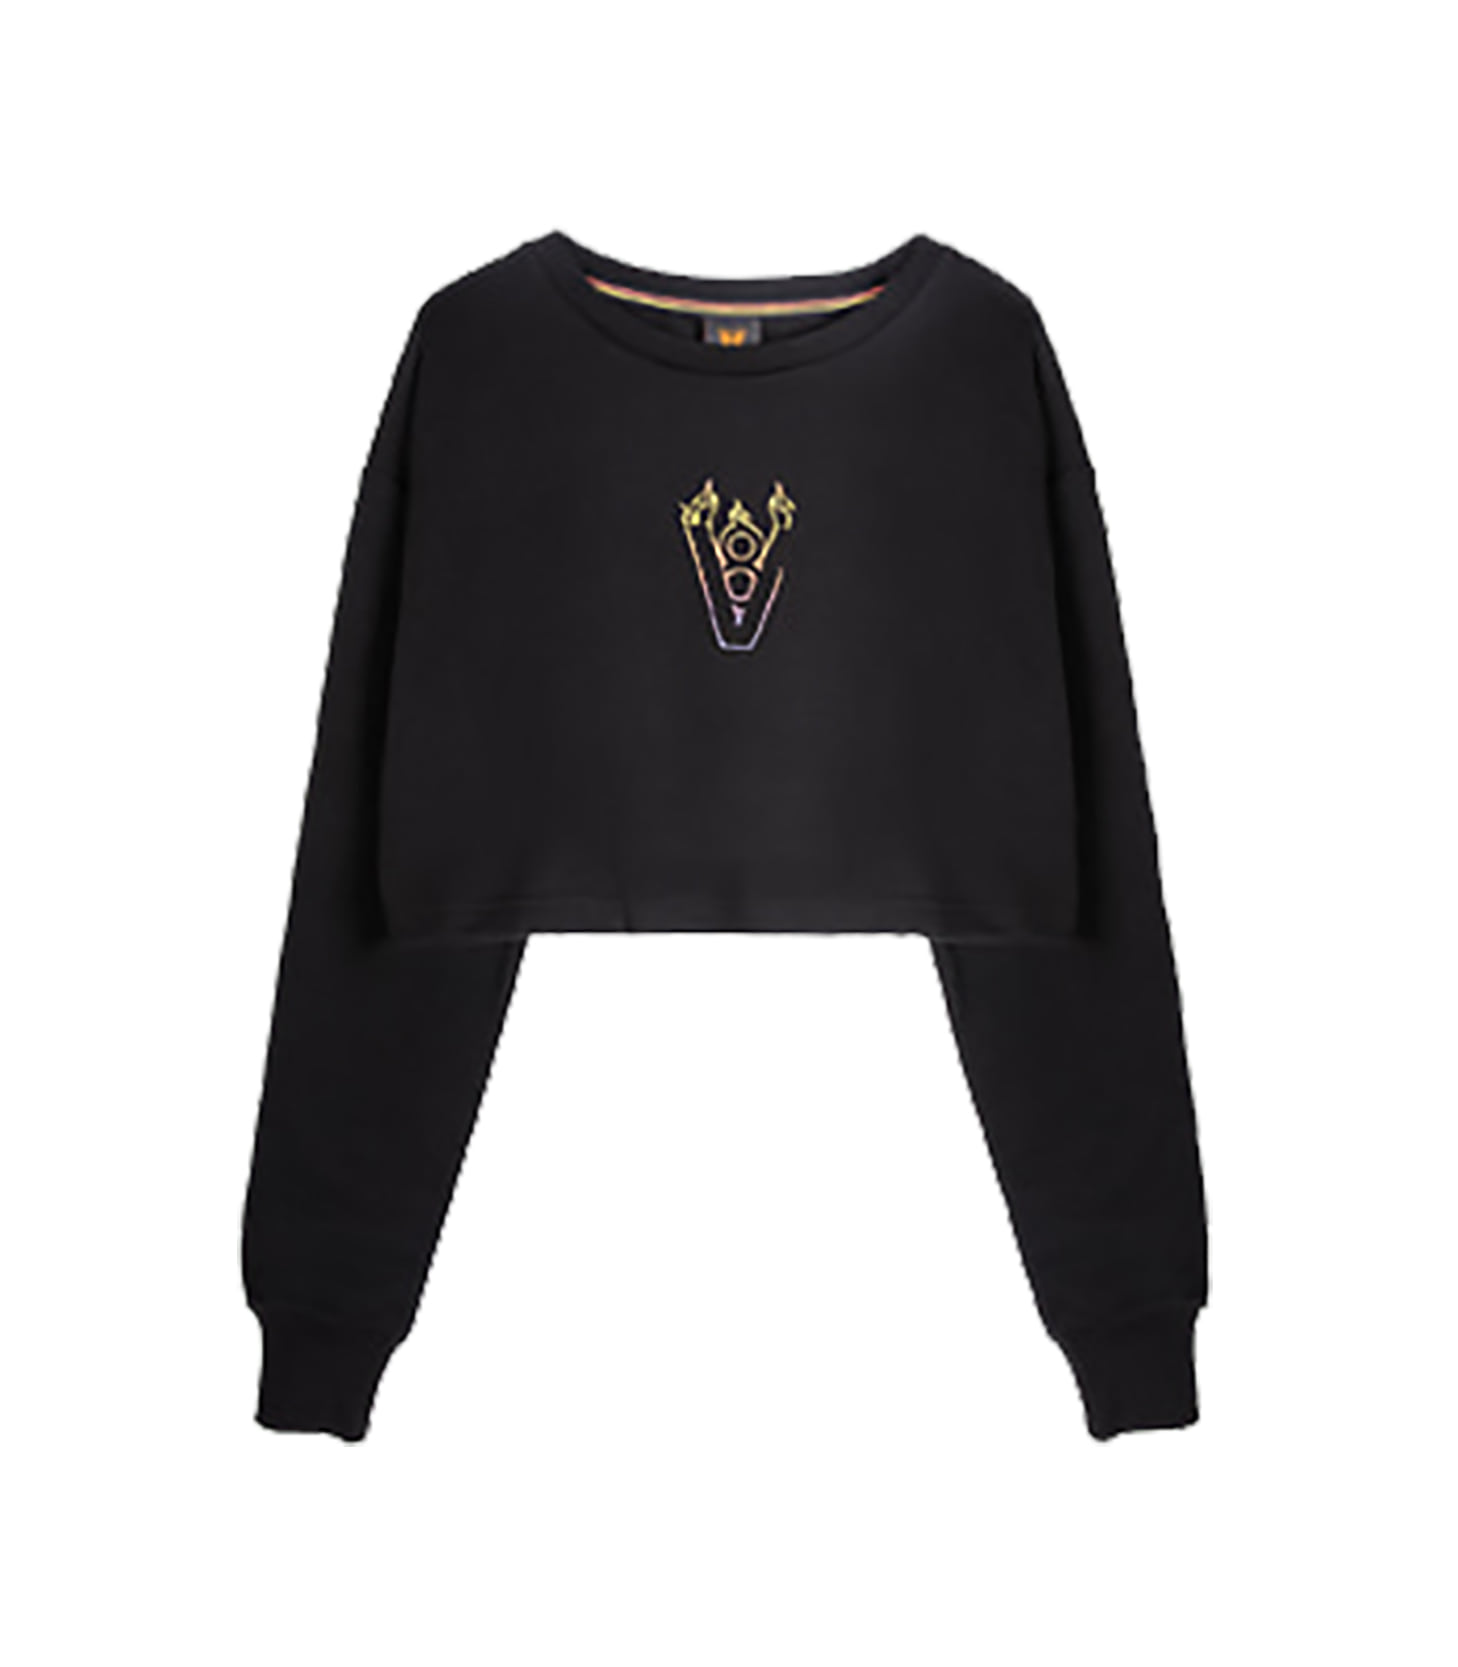 BLAZE LOGO CROP TOP (BLACK)